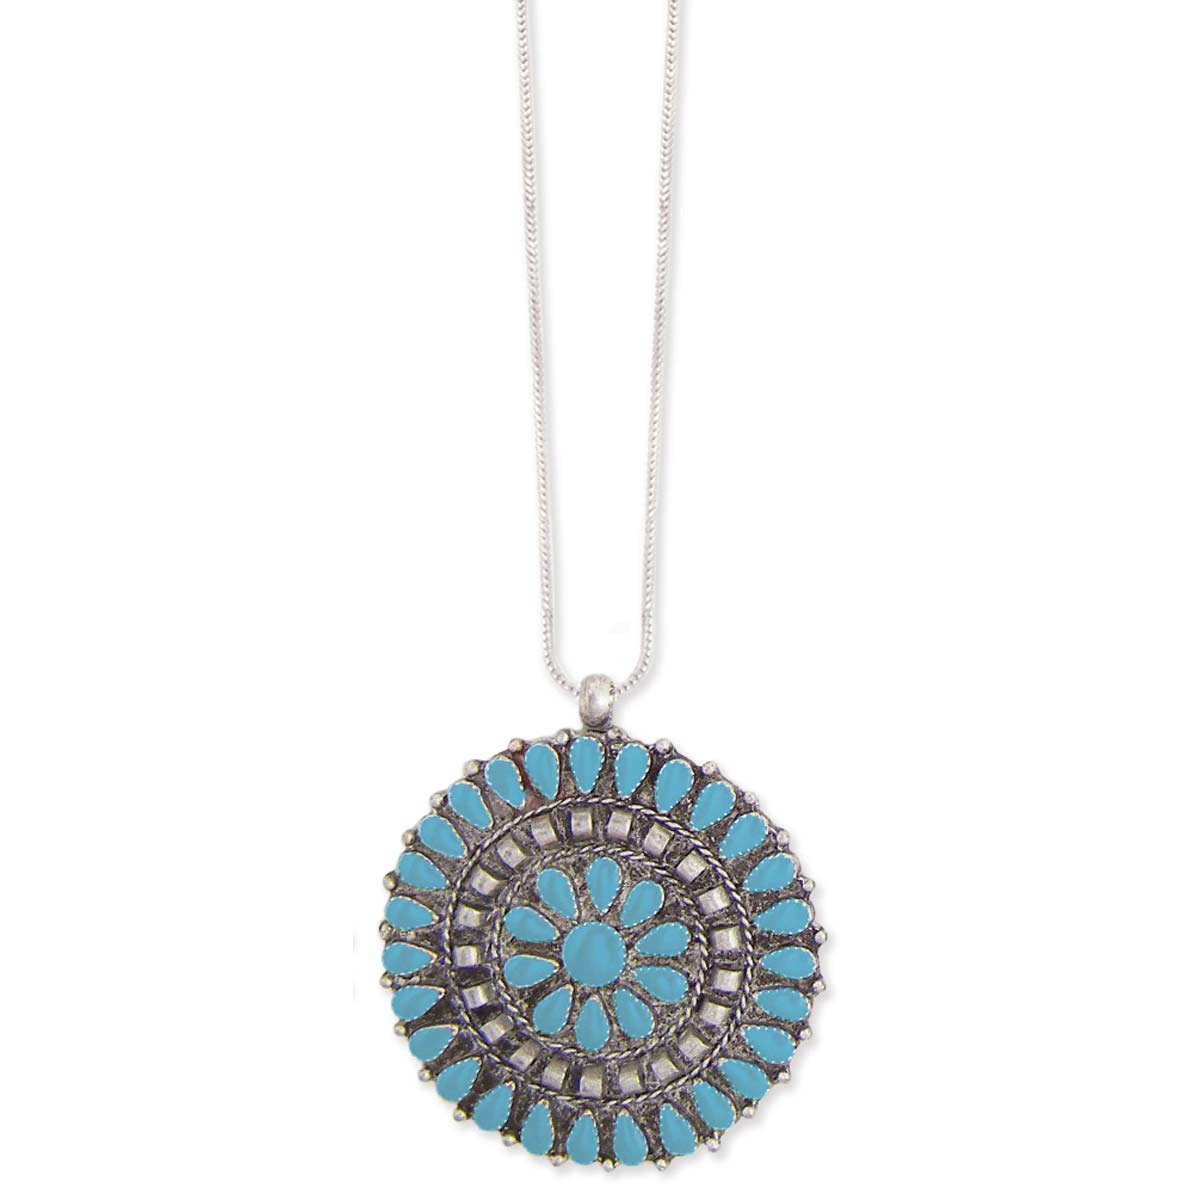 Southwest Turquoise Pendant Necklace